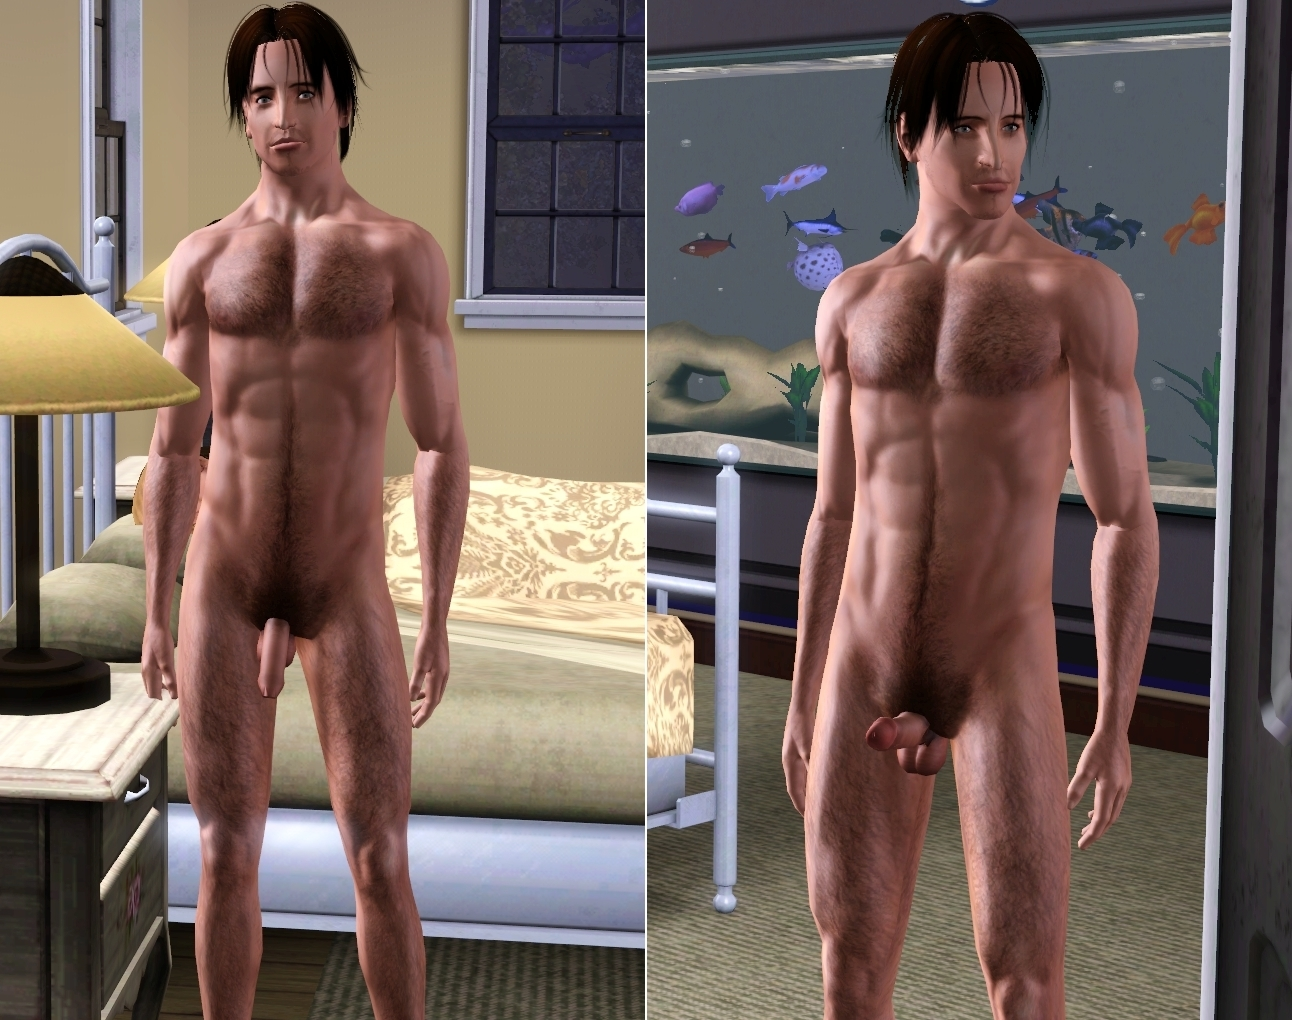 Naked sims skins pornos photos